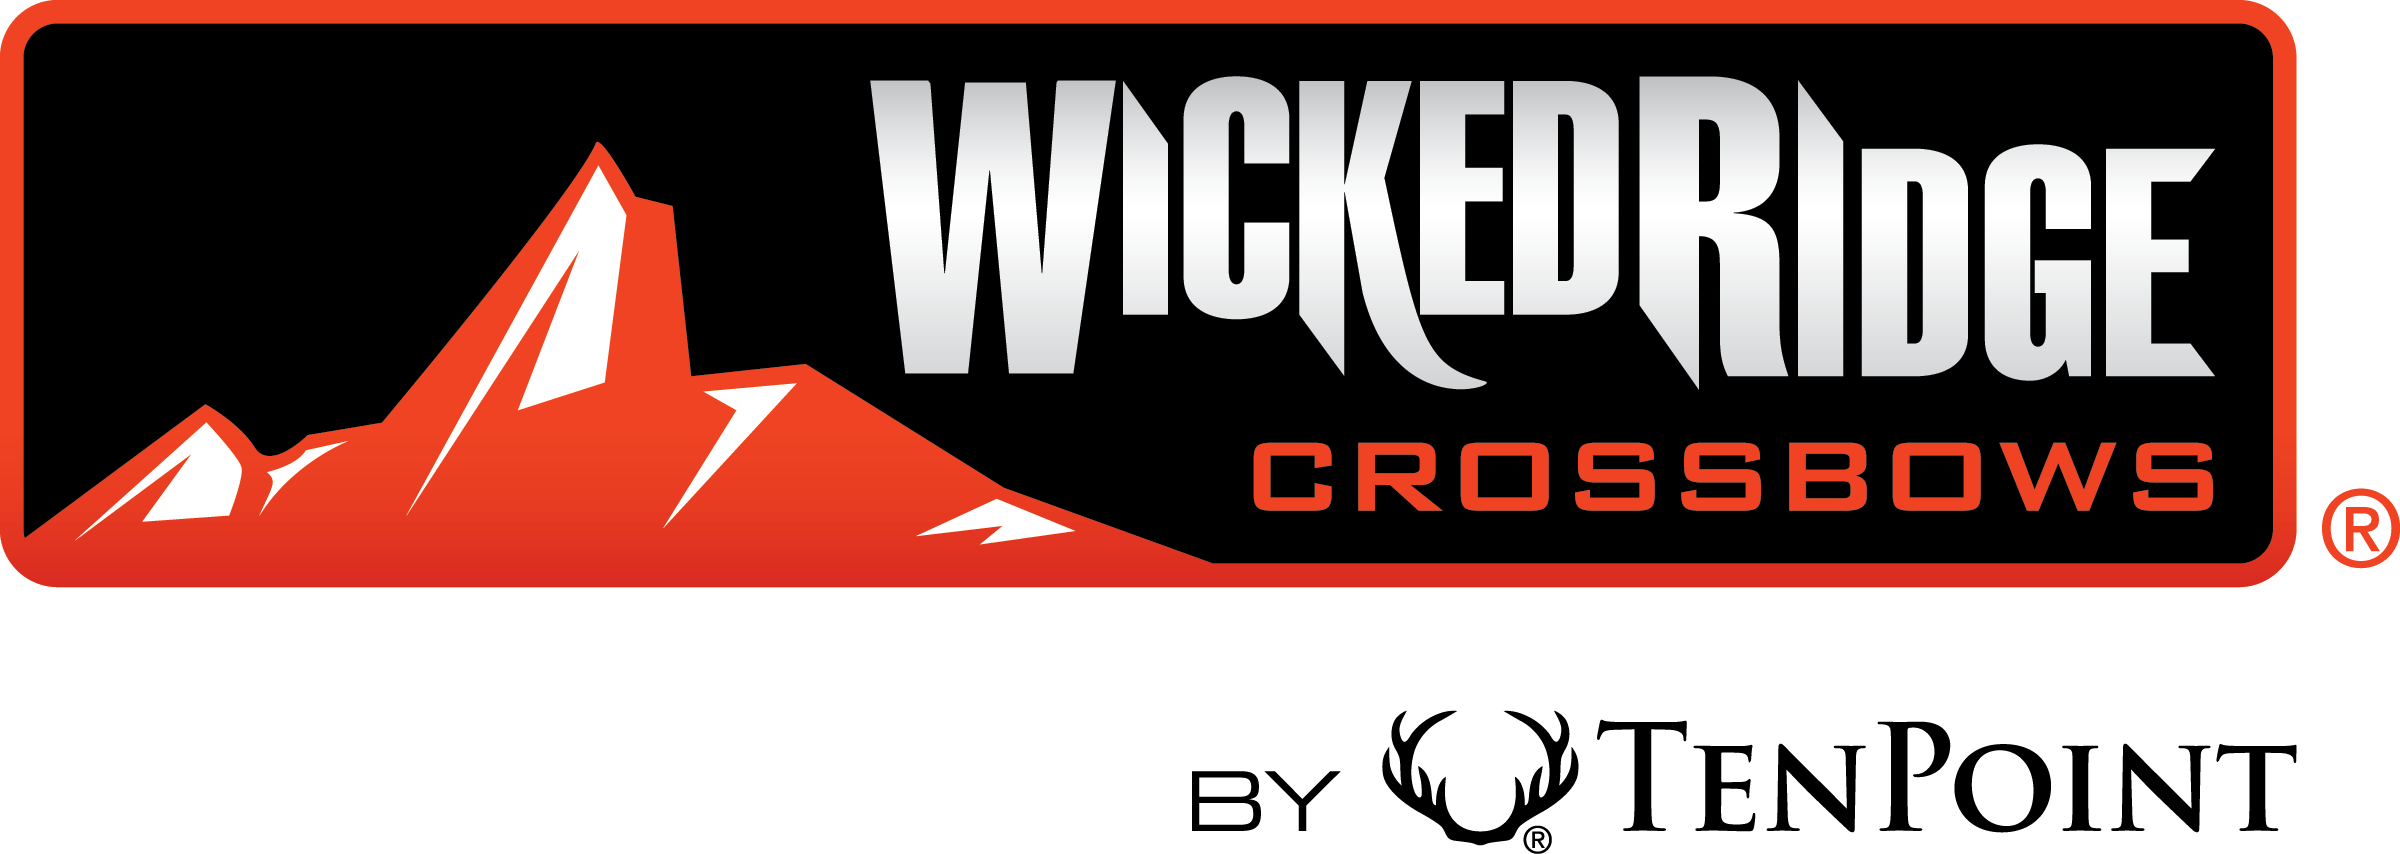 Wicked_Ridge logo